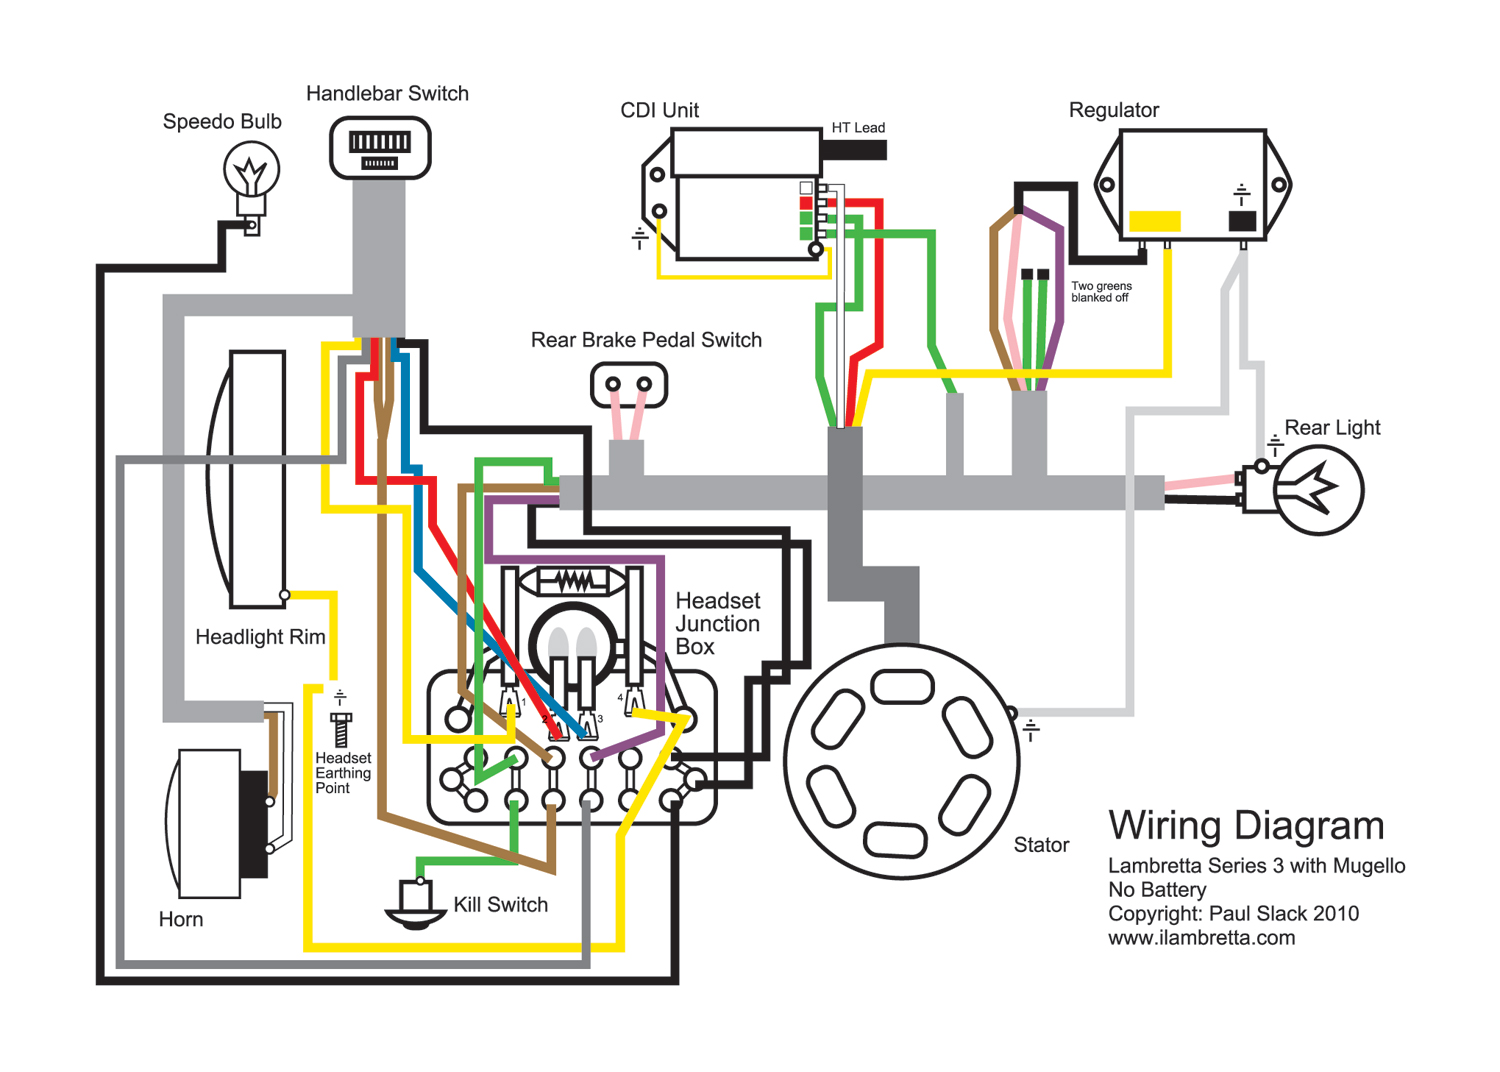 Lambretta Electronic Wiring Diagram Free For You Moreover Install Light Switch On Ceiling Fan 3 Restoration Mugello 12 Volt Electrical Series 2